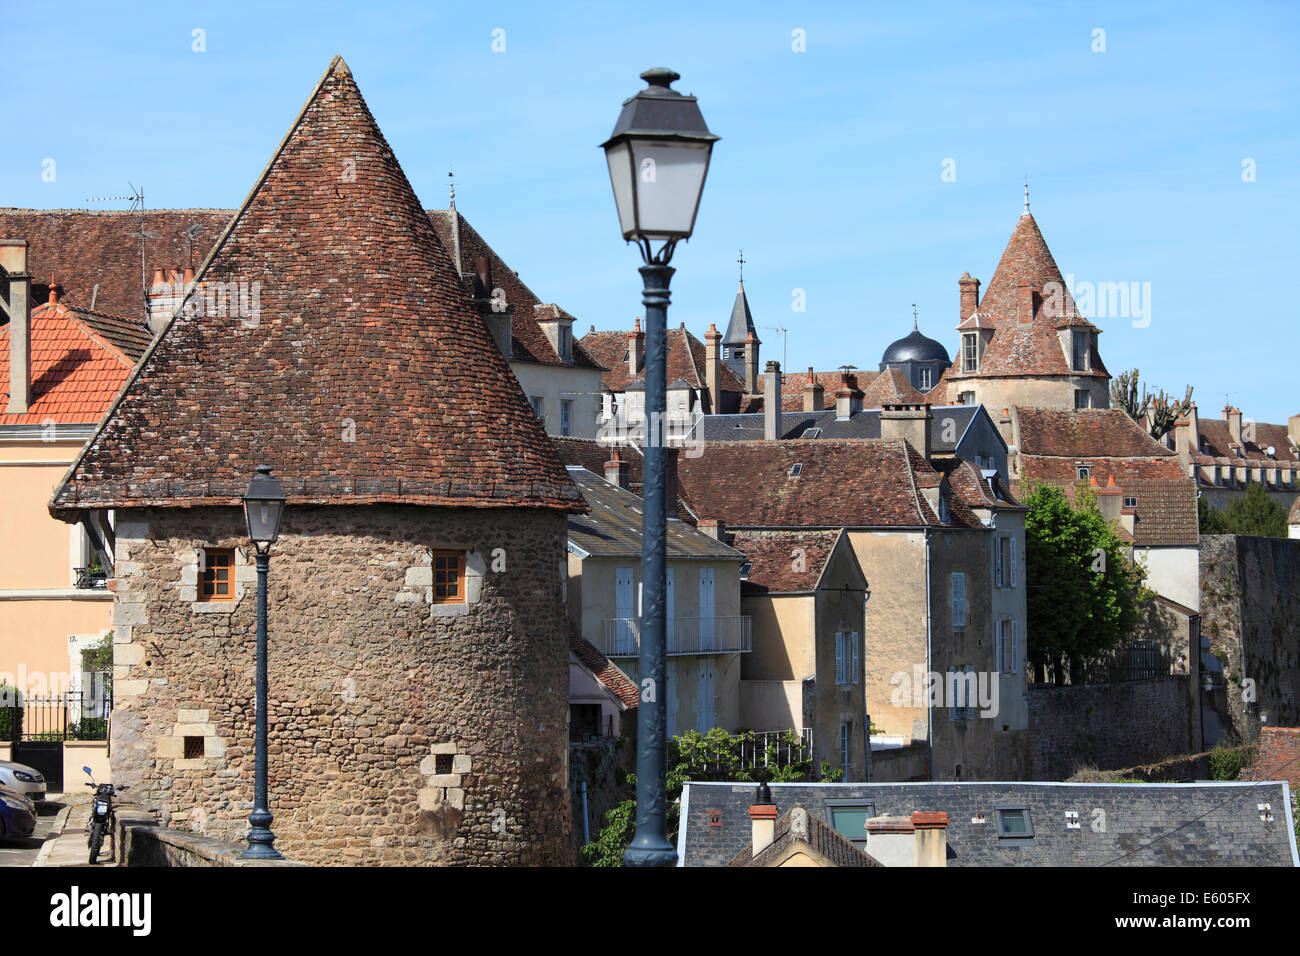 Rooftops in Avallon, Burgundy France - Stock Image